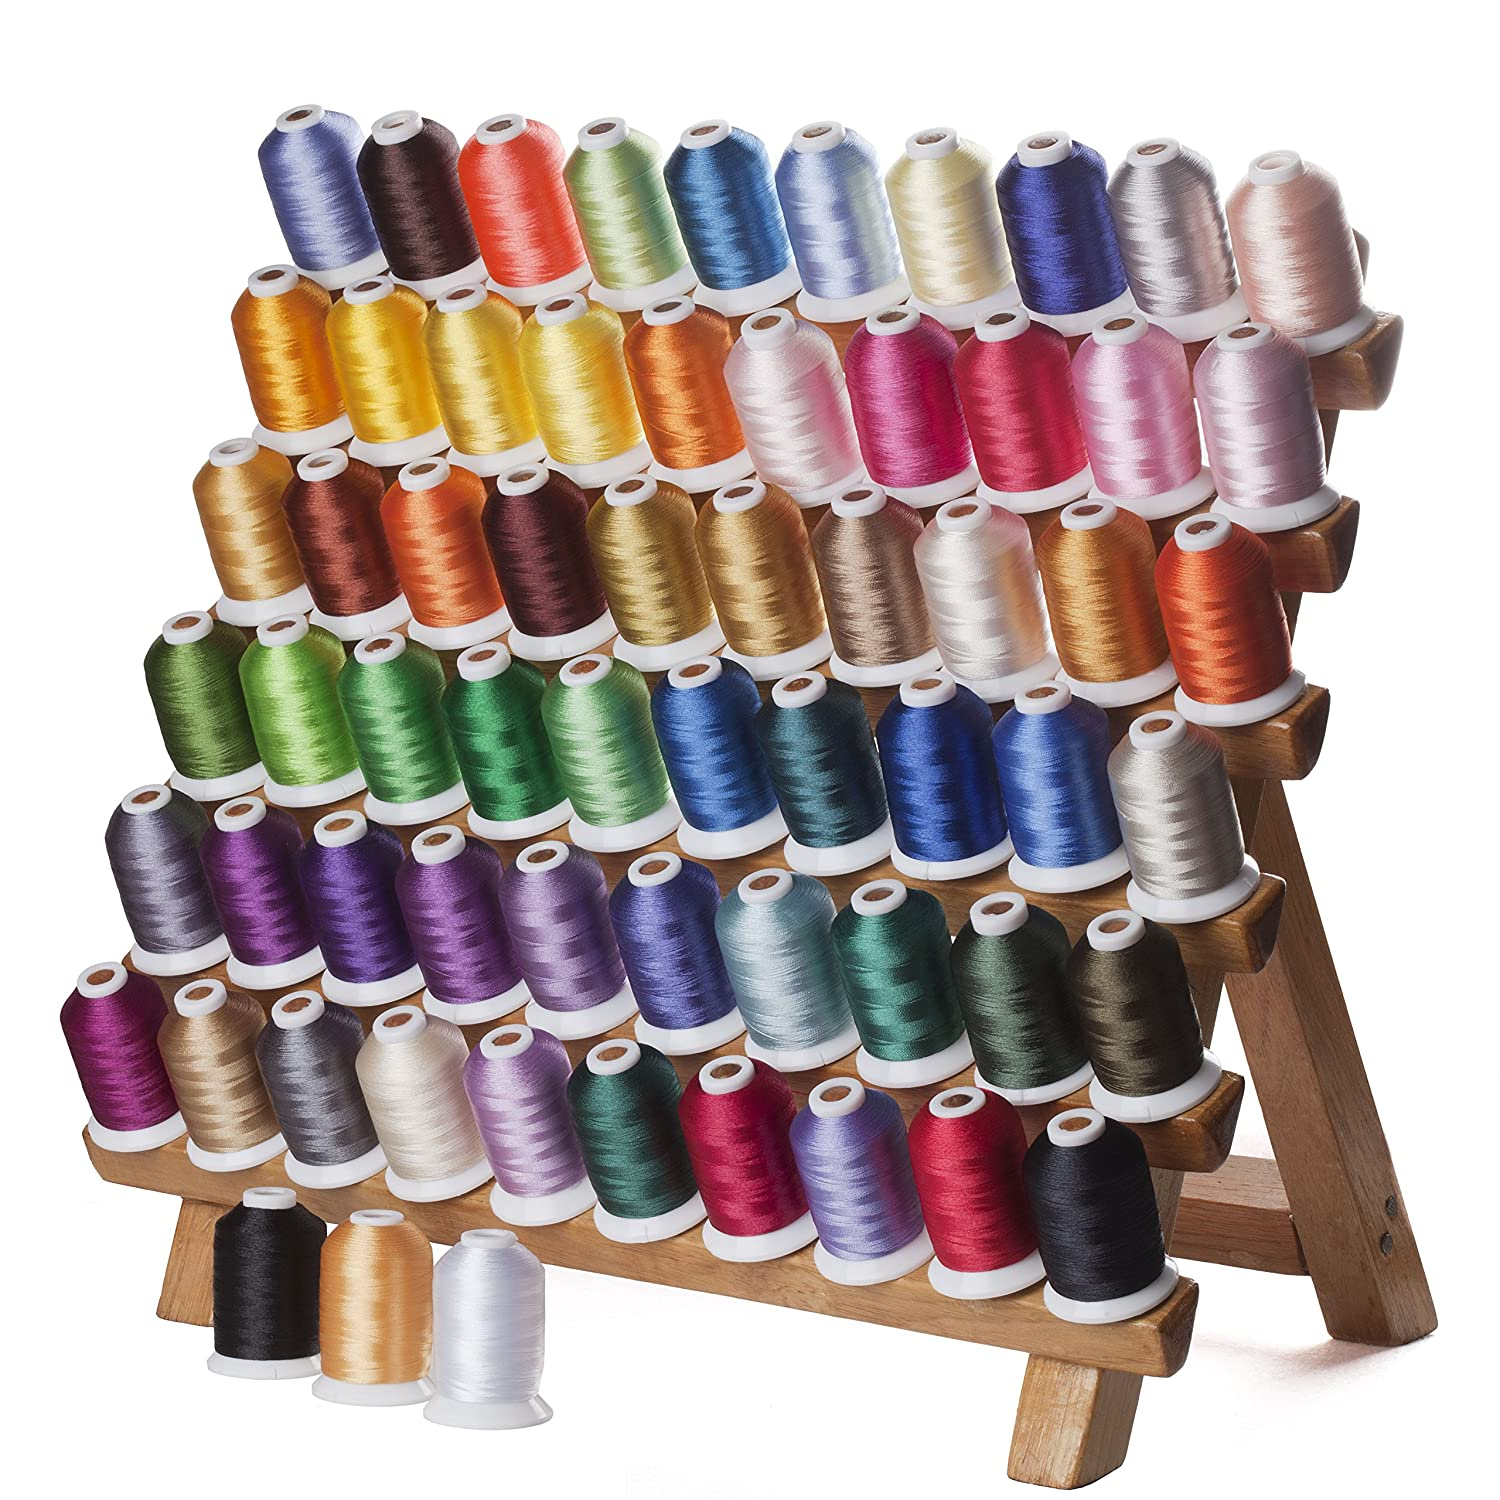 Simthread 63 Brother Colors 1000m Embroidery Machine Thread + Free Bonus 5374157